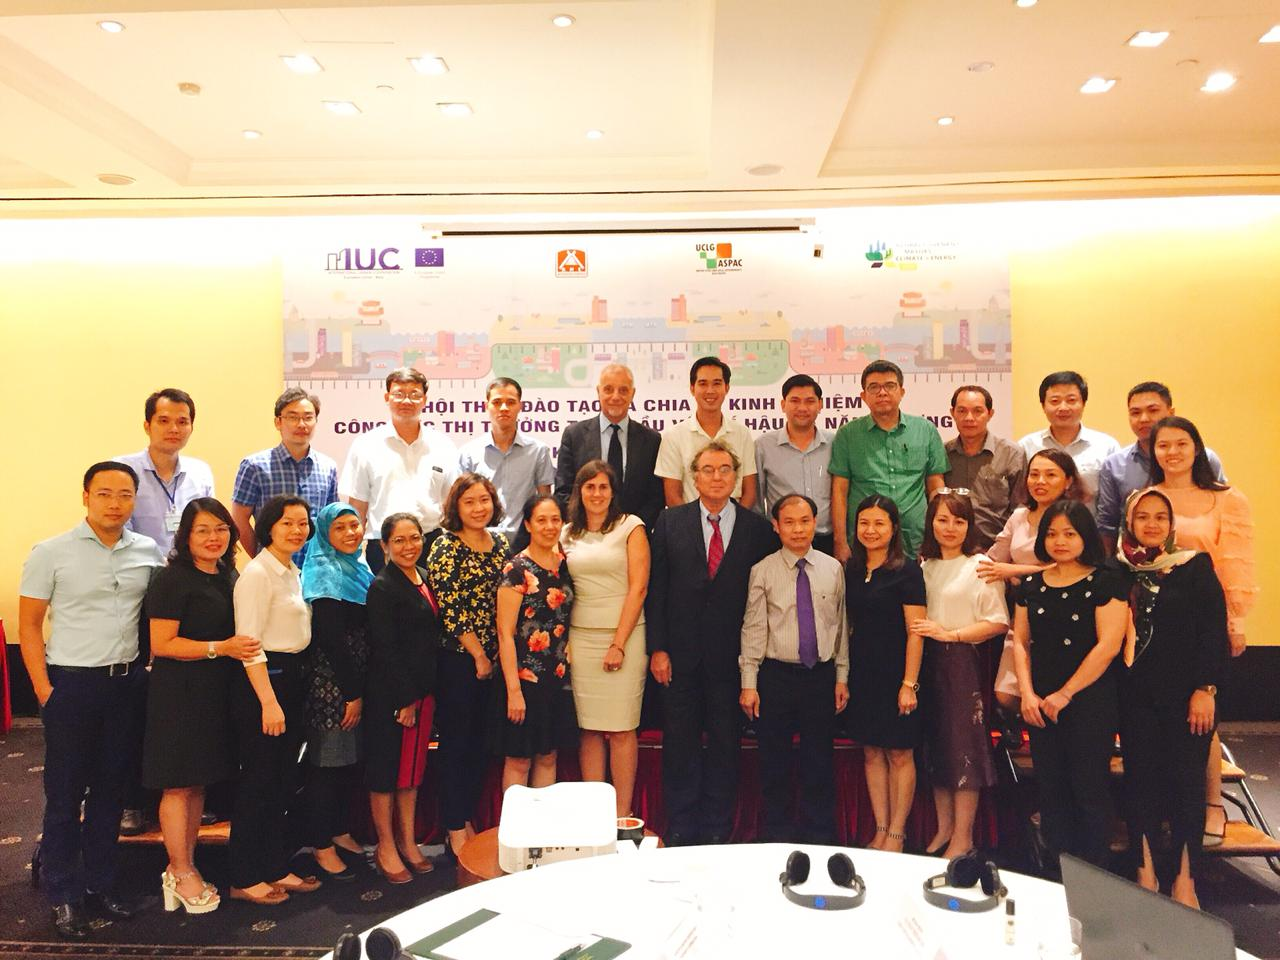 Training on Energy and Climate Action in Hanoi